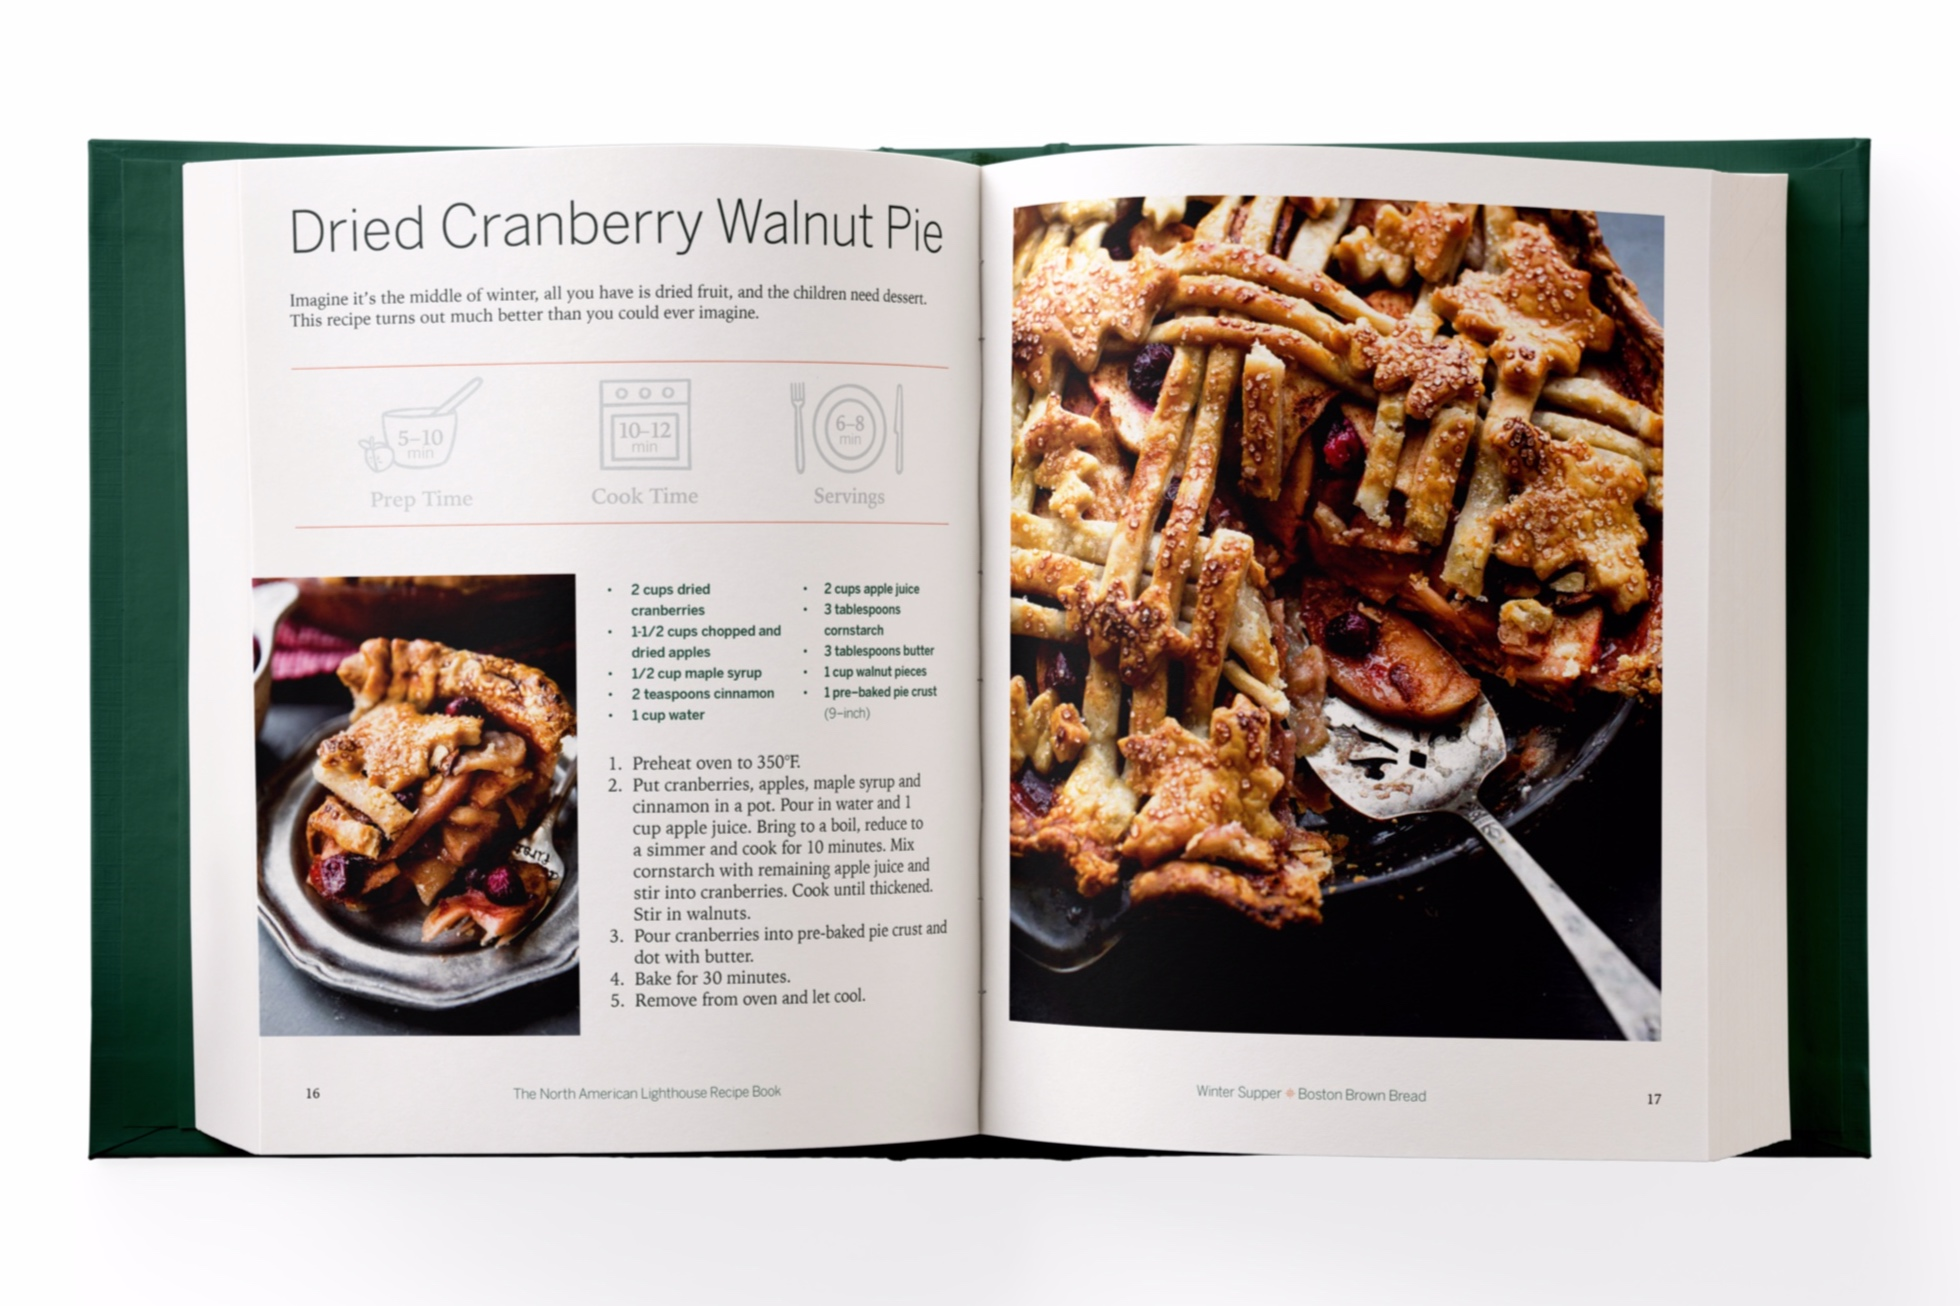 The second recipe page for Dried Cranberry Walnut Pie